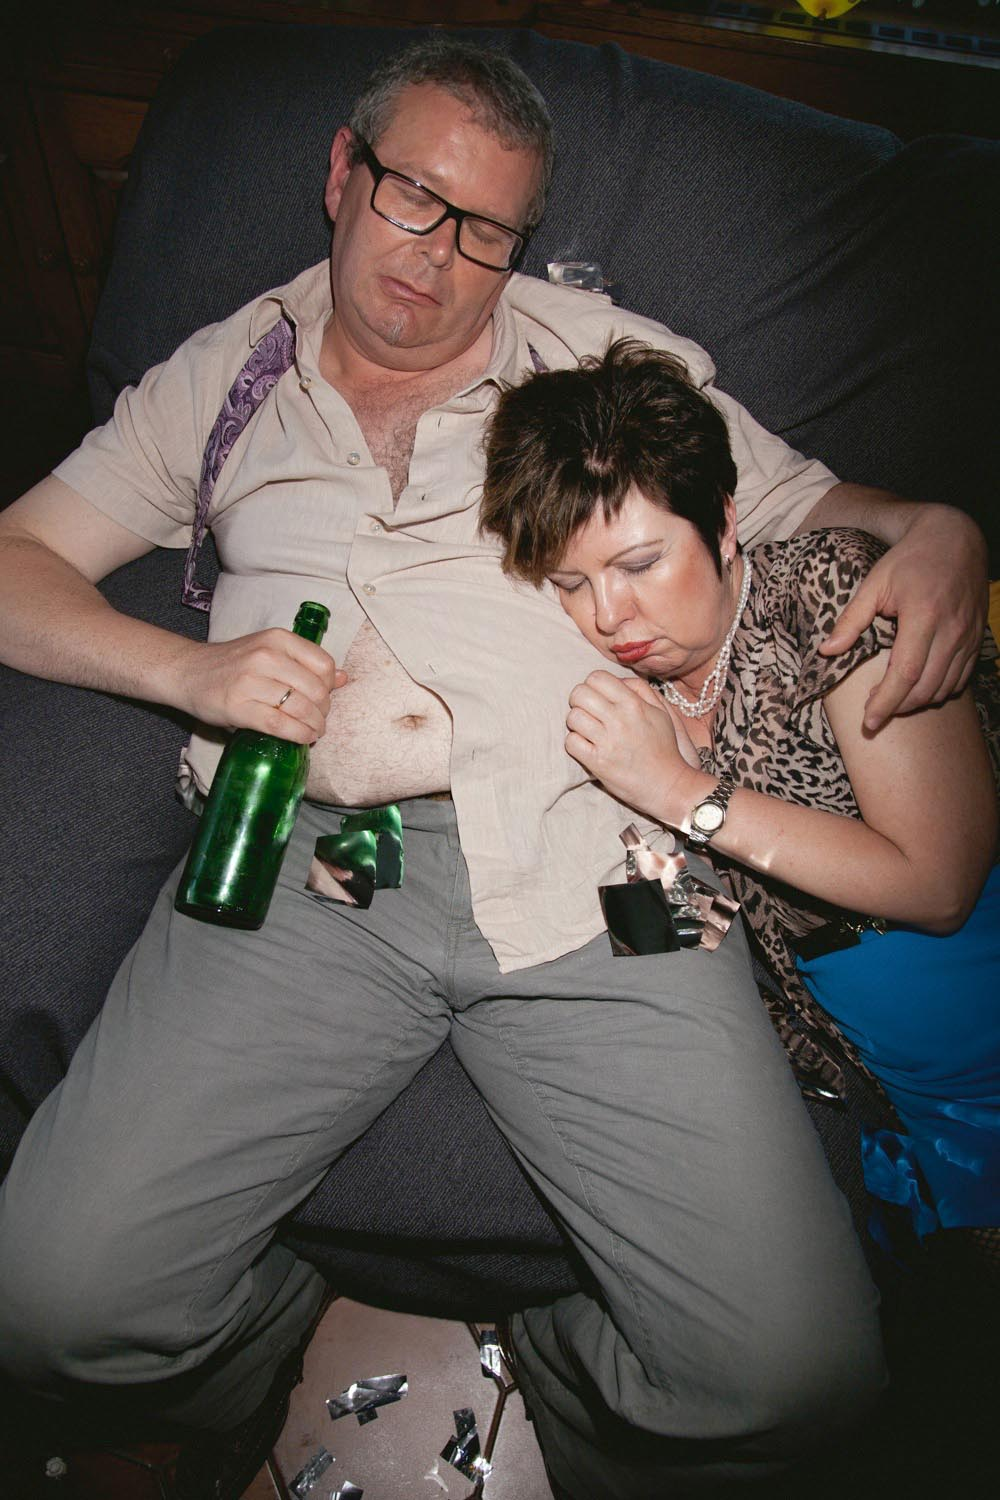 people man men woman women drunk wasted senior seniors couple sleep sleeping bottle beer belly